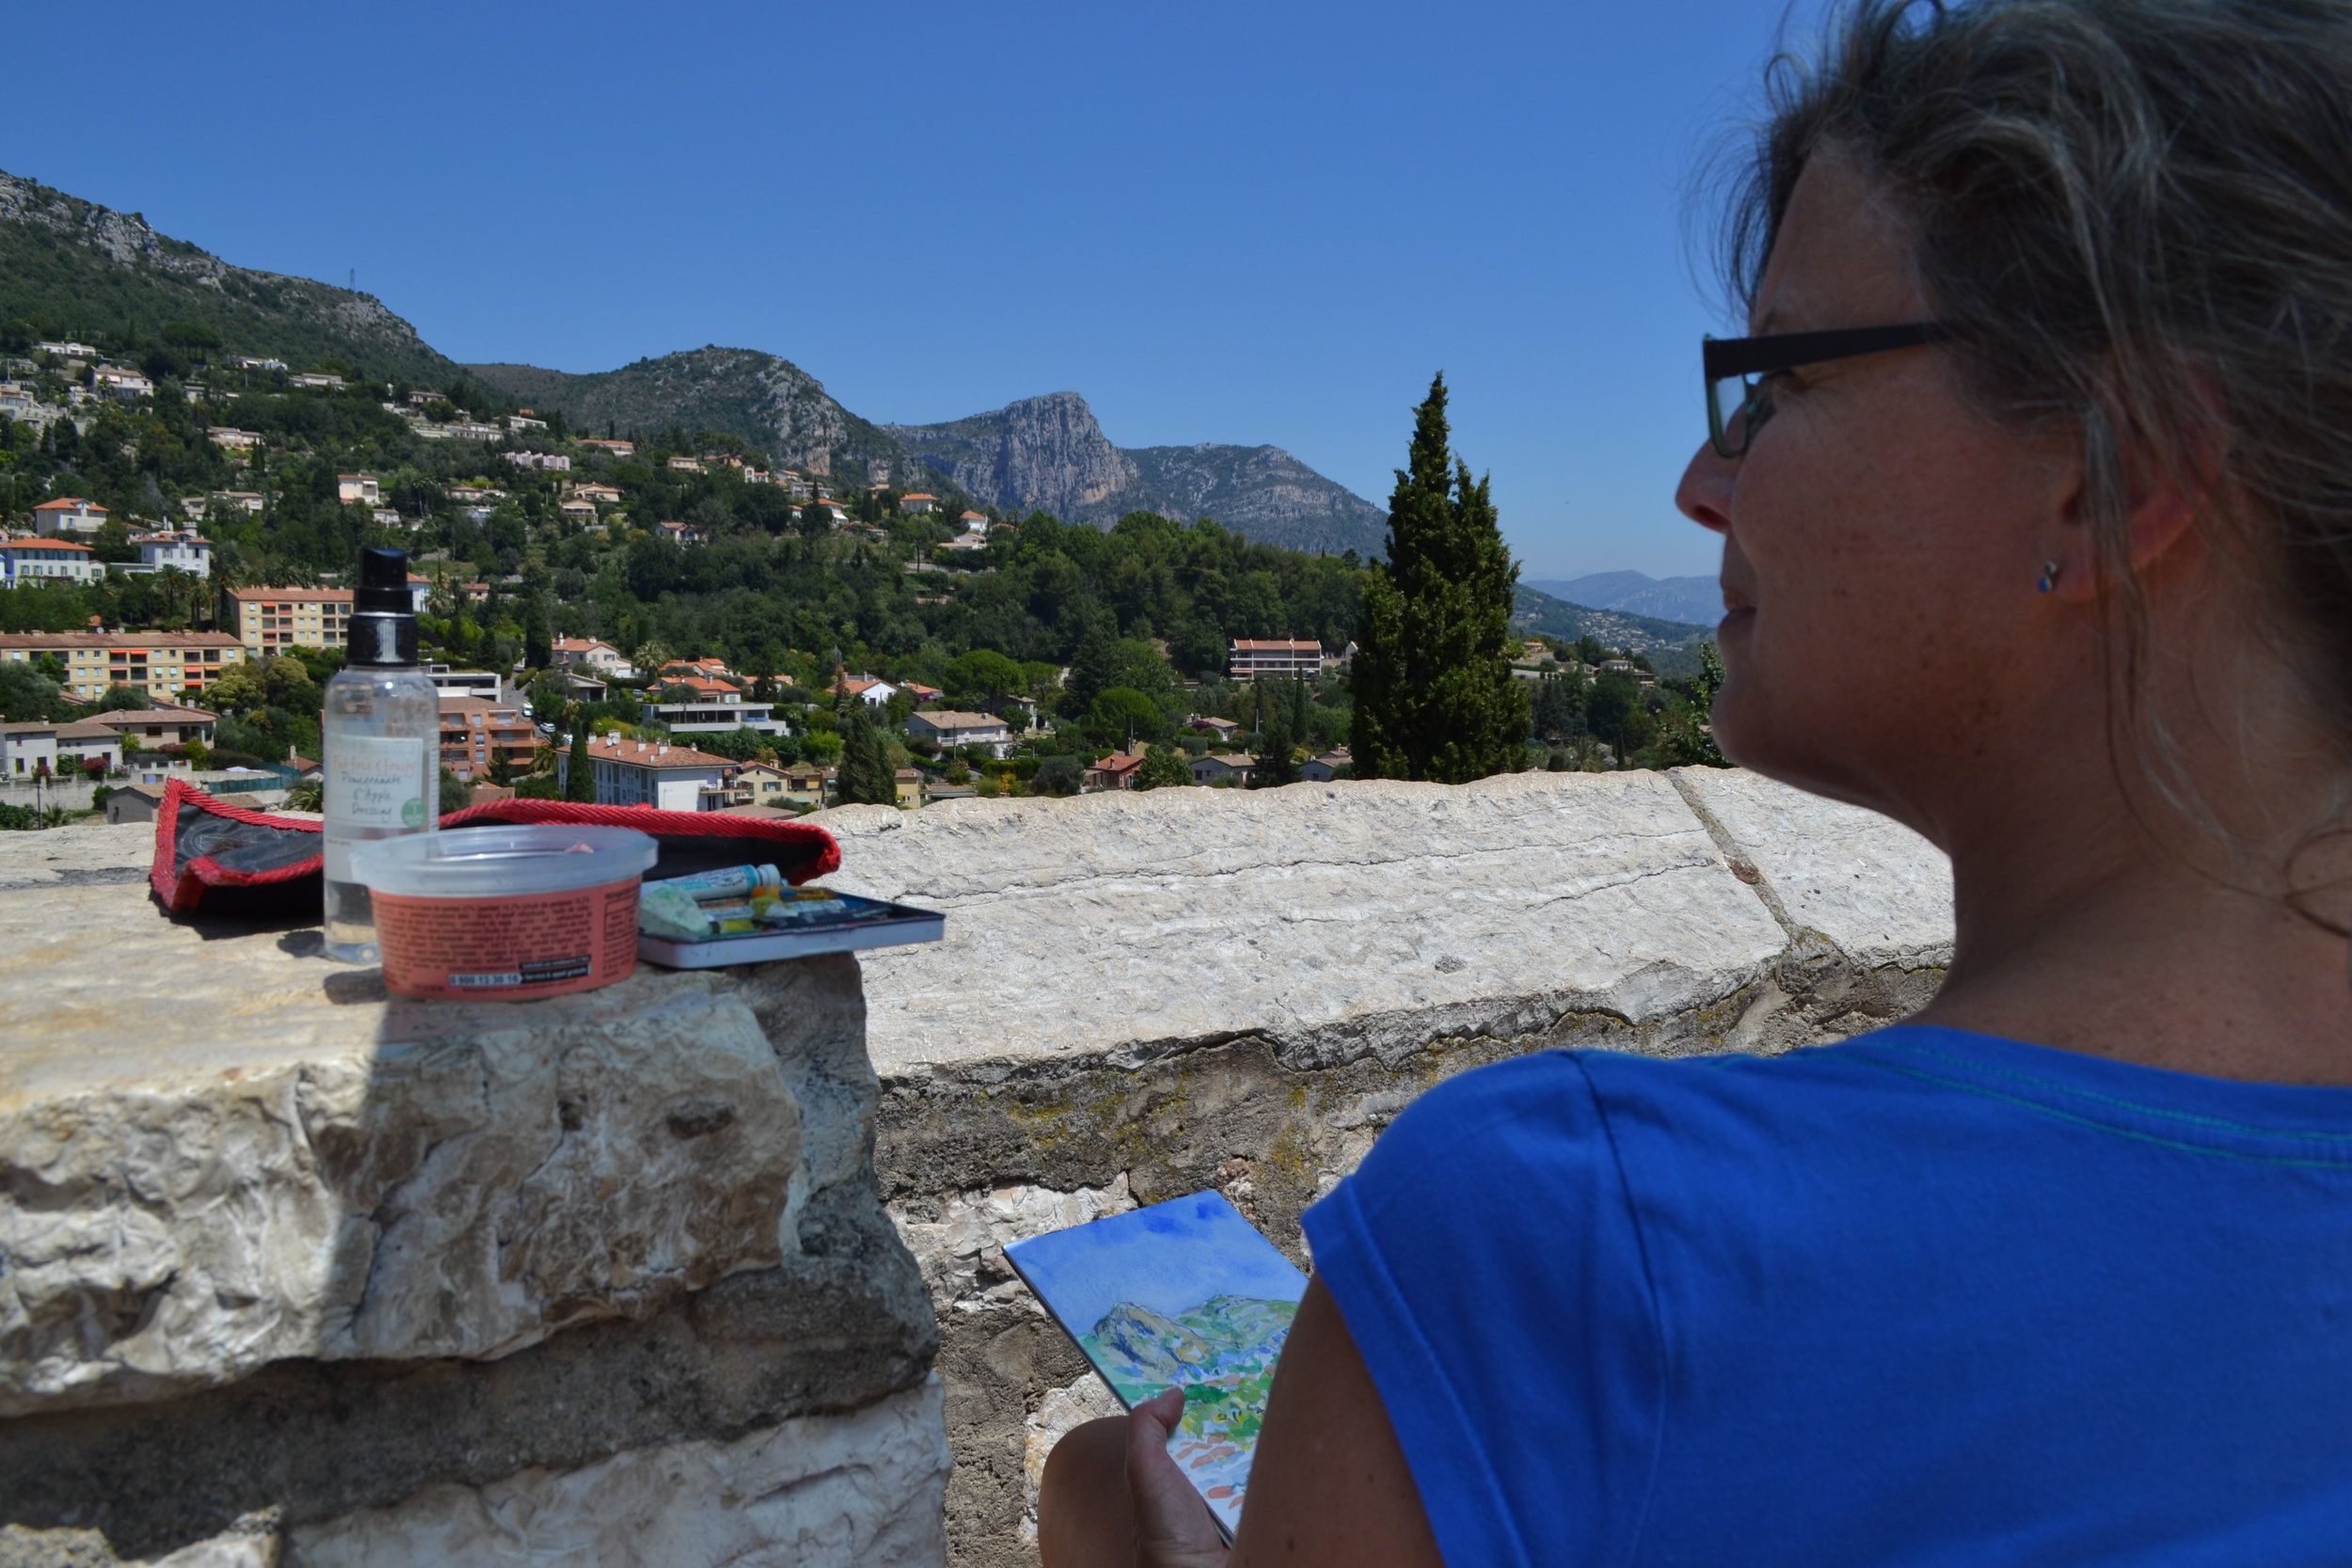 Painting in the South of France